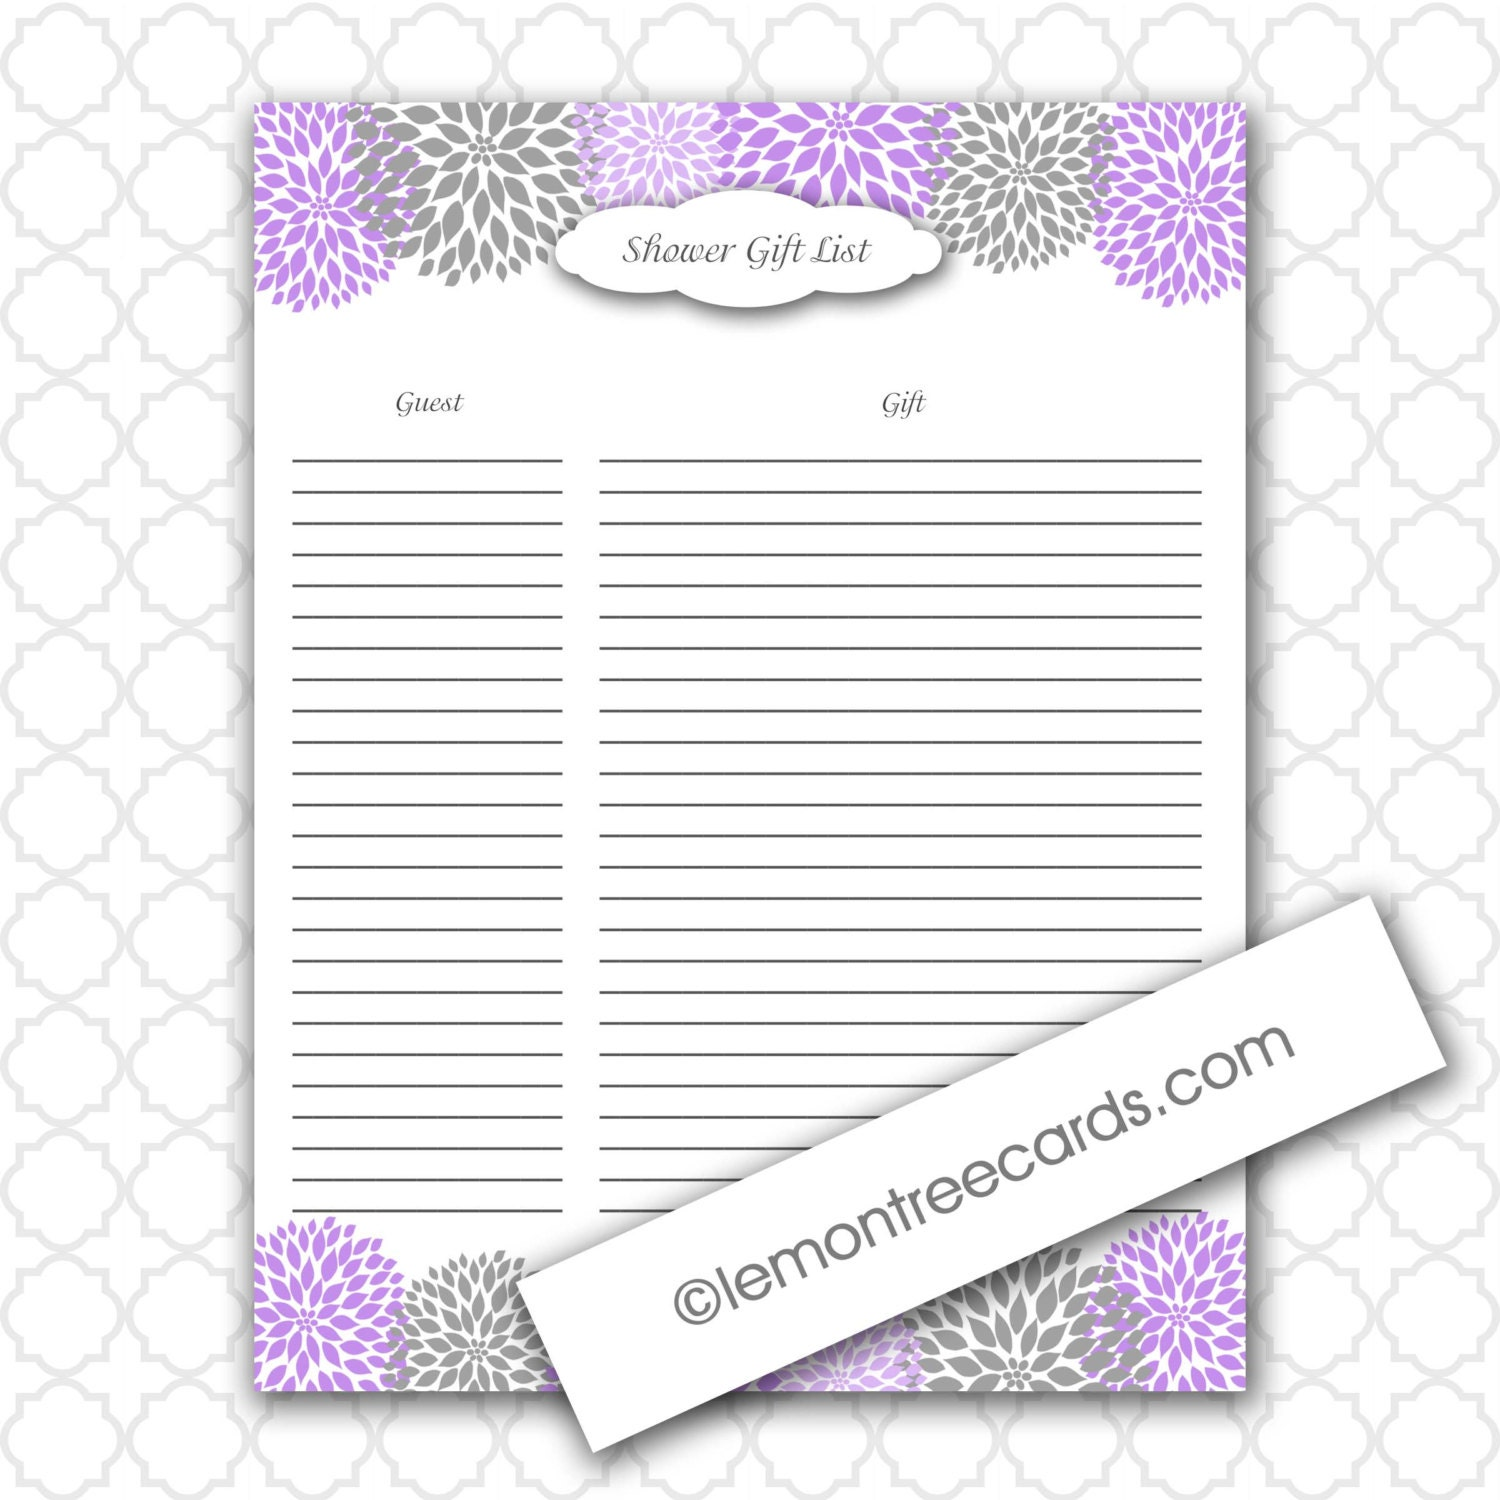 Template For Wedding Gift List : Baby Shower Gifts Received List Template - Gifts